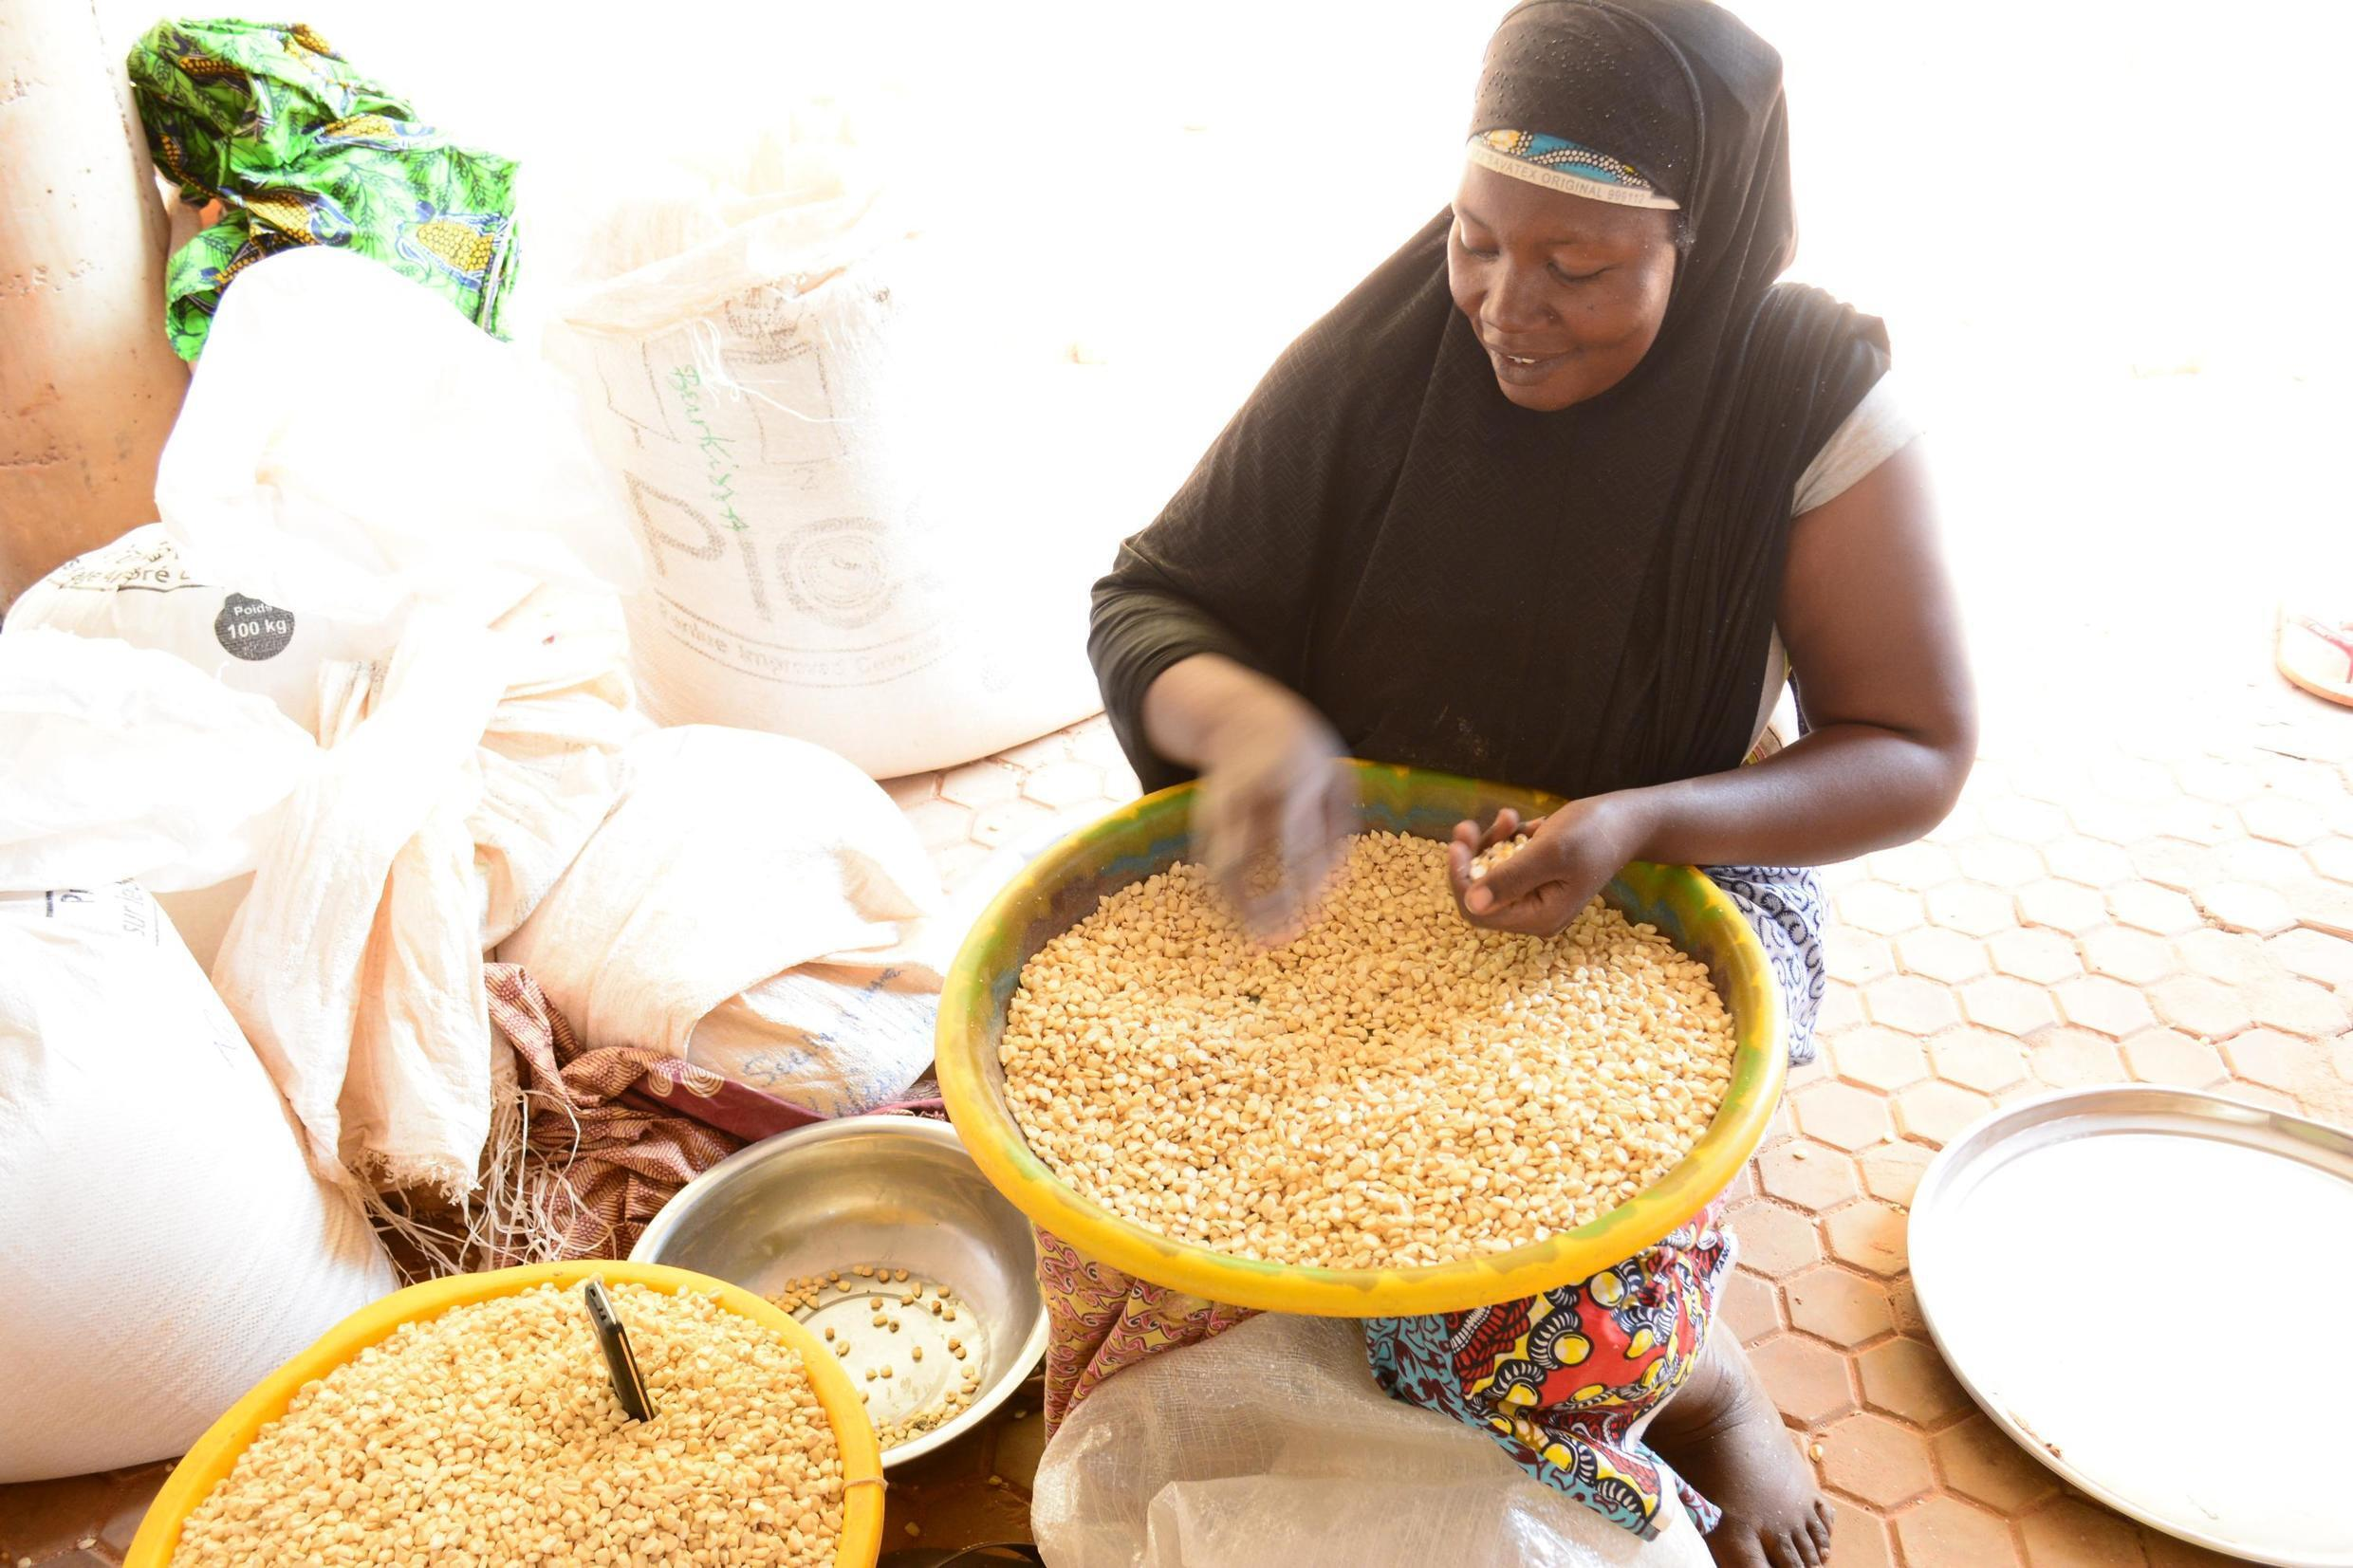 A Kenyan farmer separates high-yielding maize seeds designed to use less land and boost production